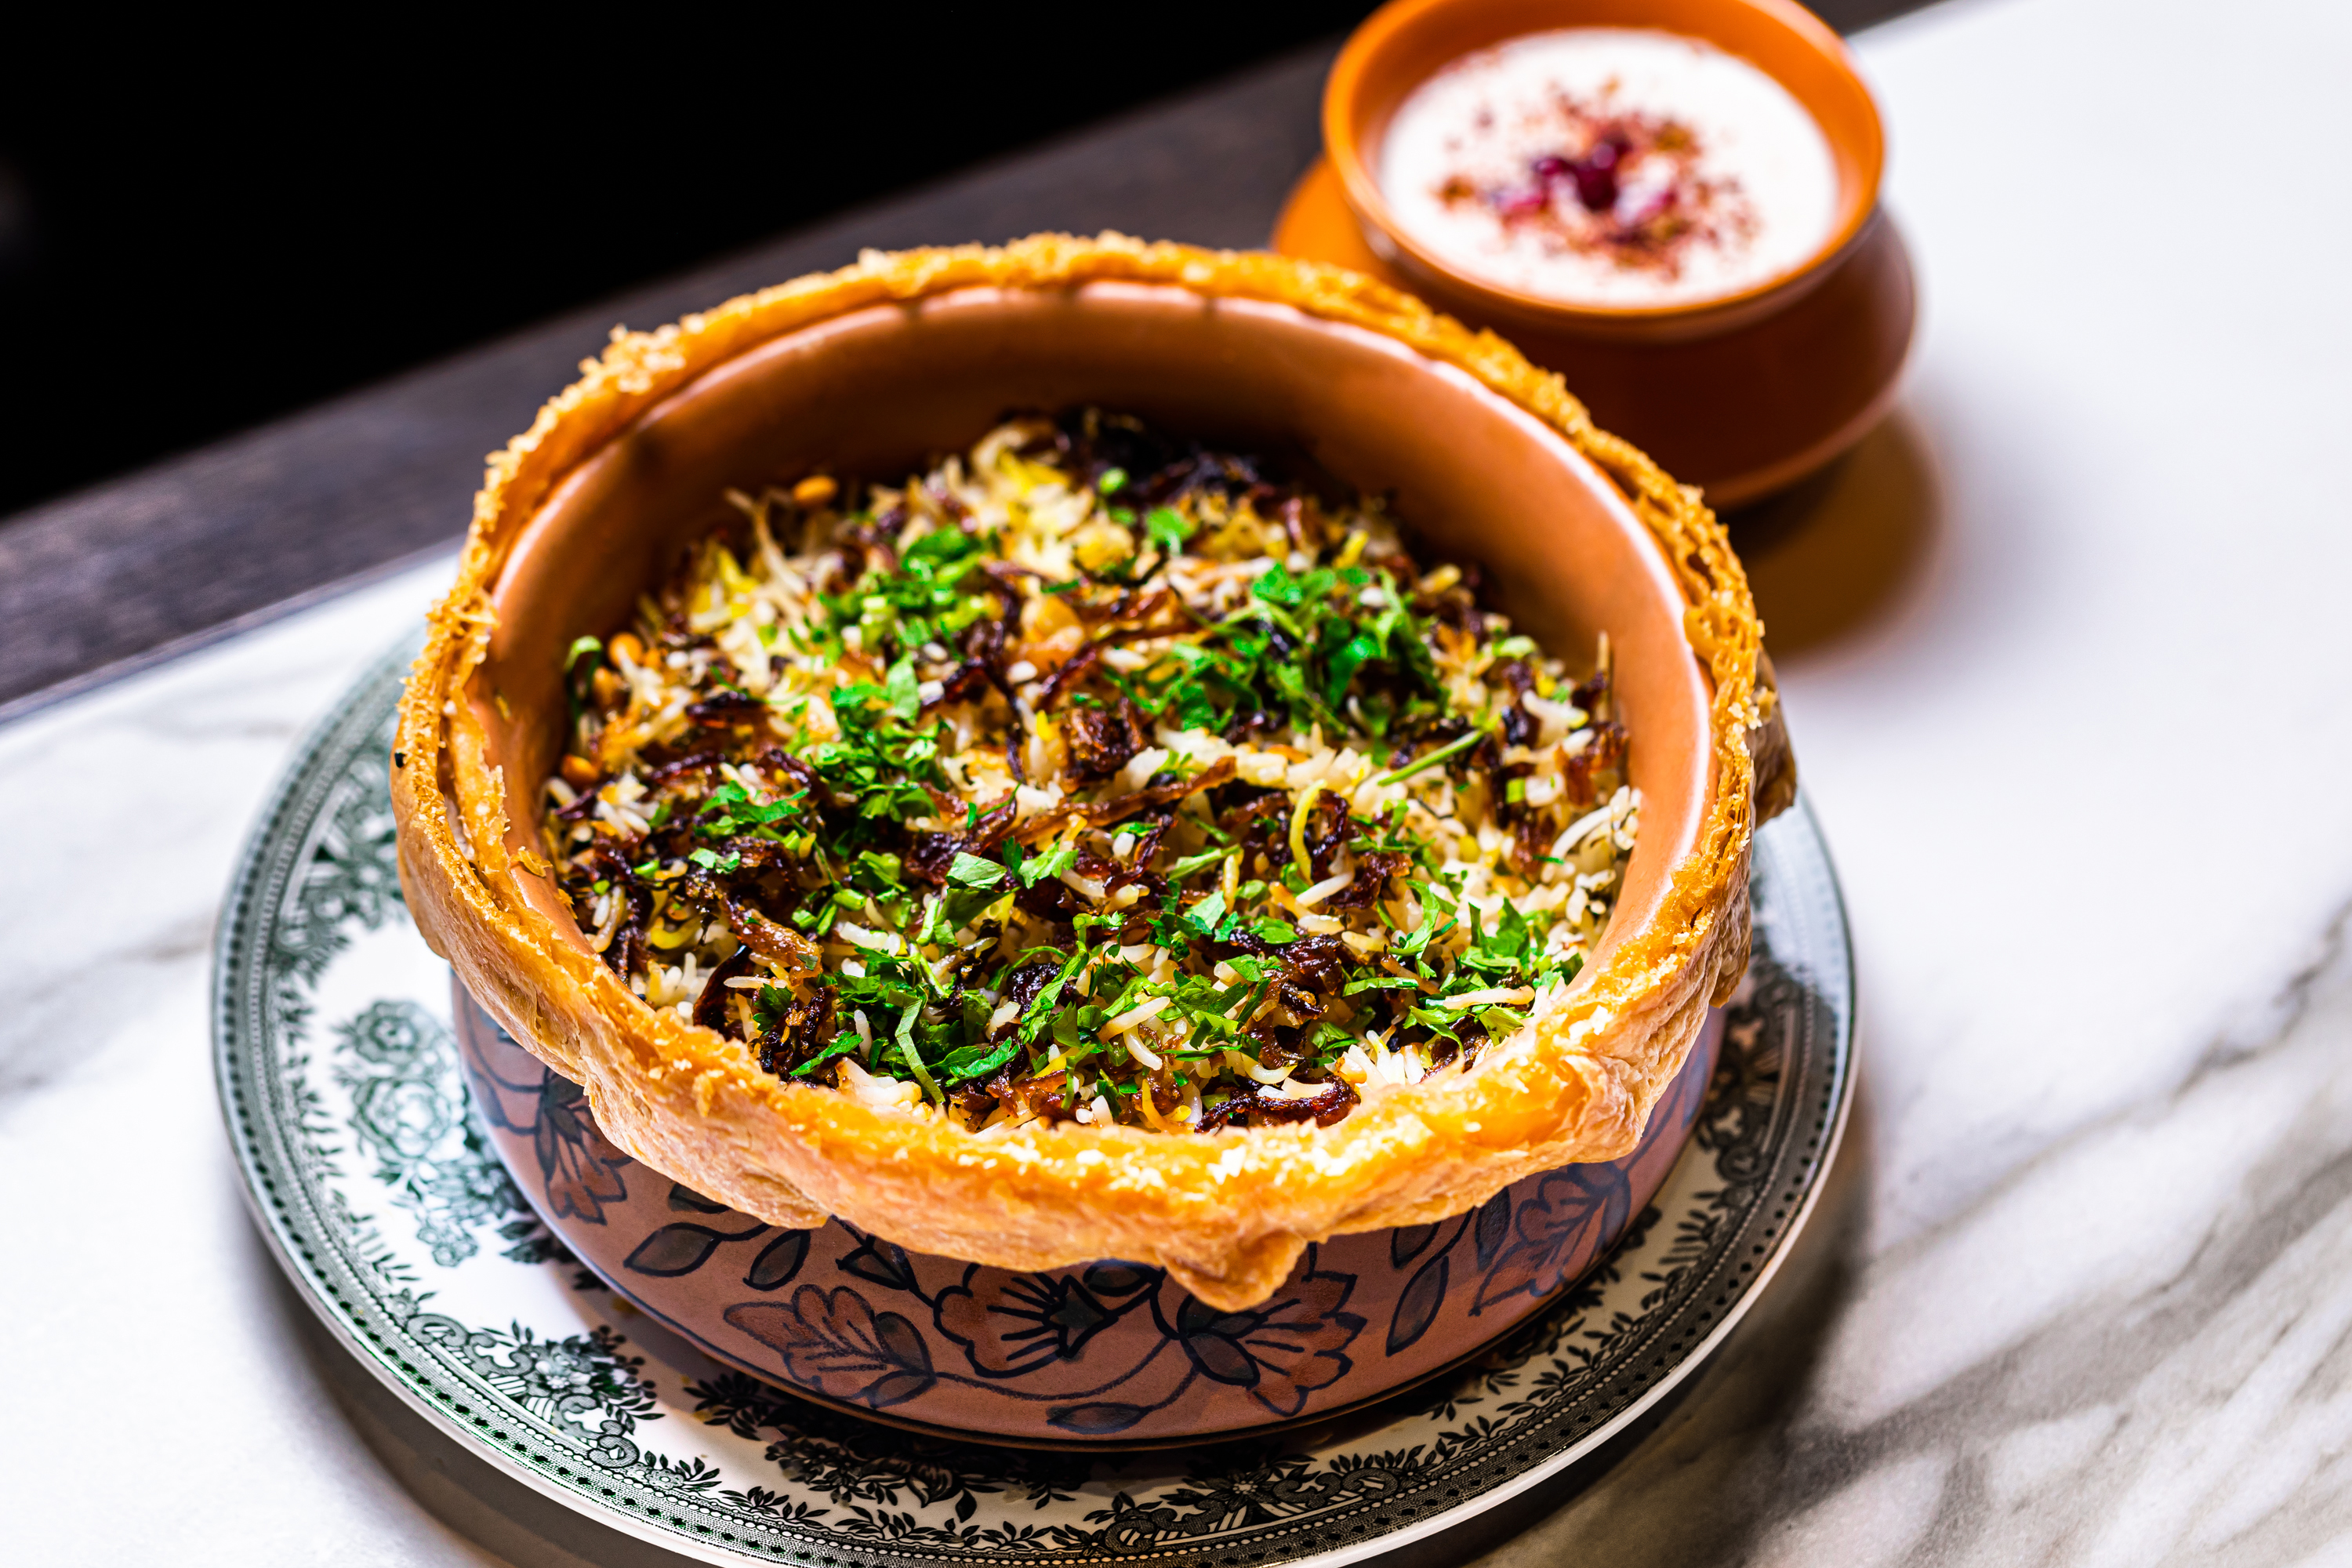 Muntjac biryani at Michelin-starred Gymkhana